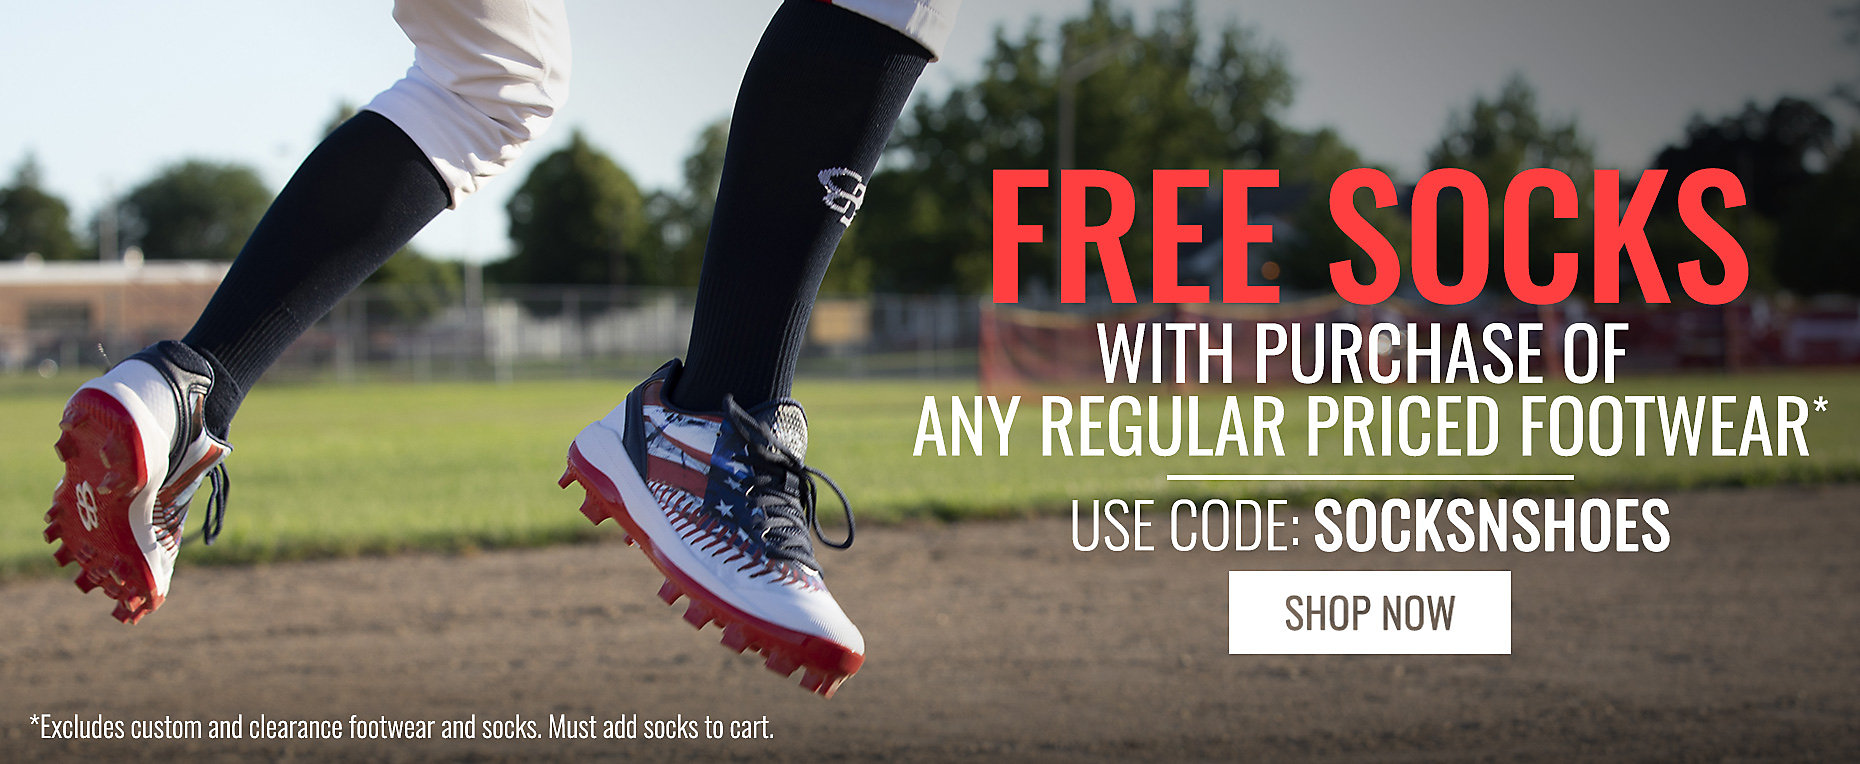 Free Socks with the purchase of any Regular Priced Footwear